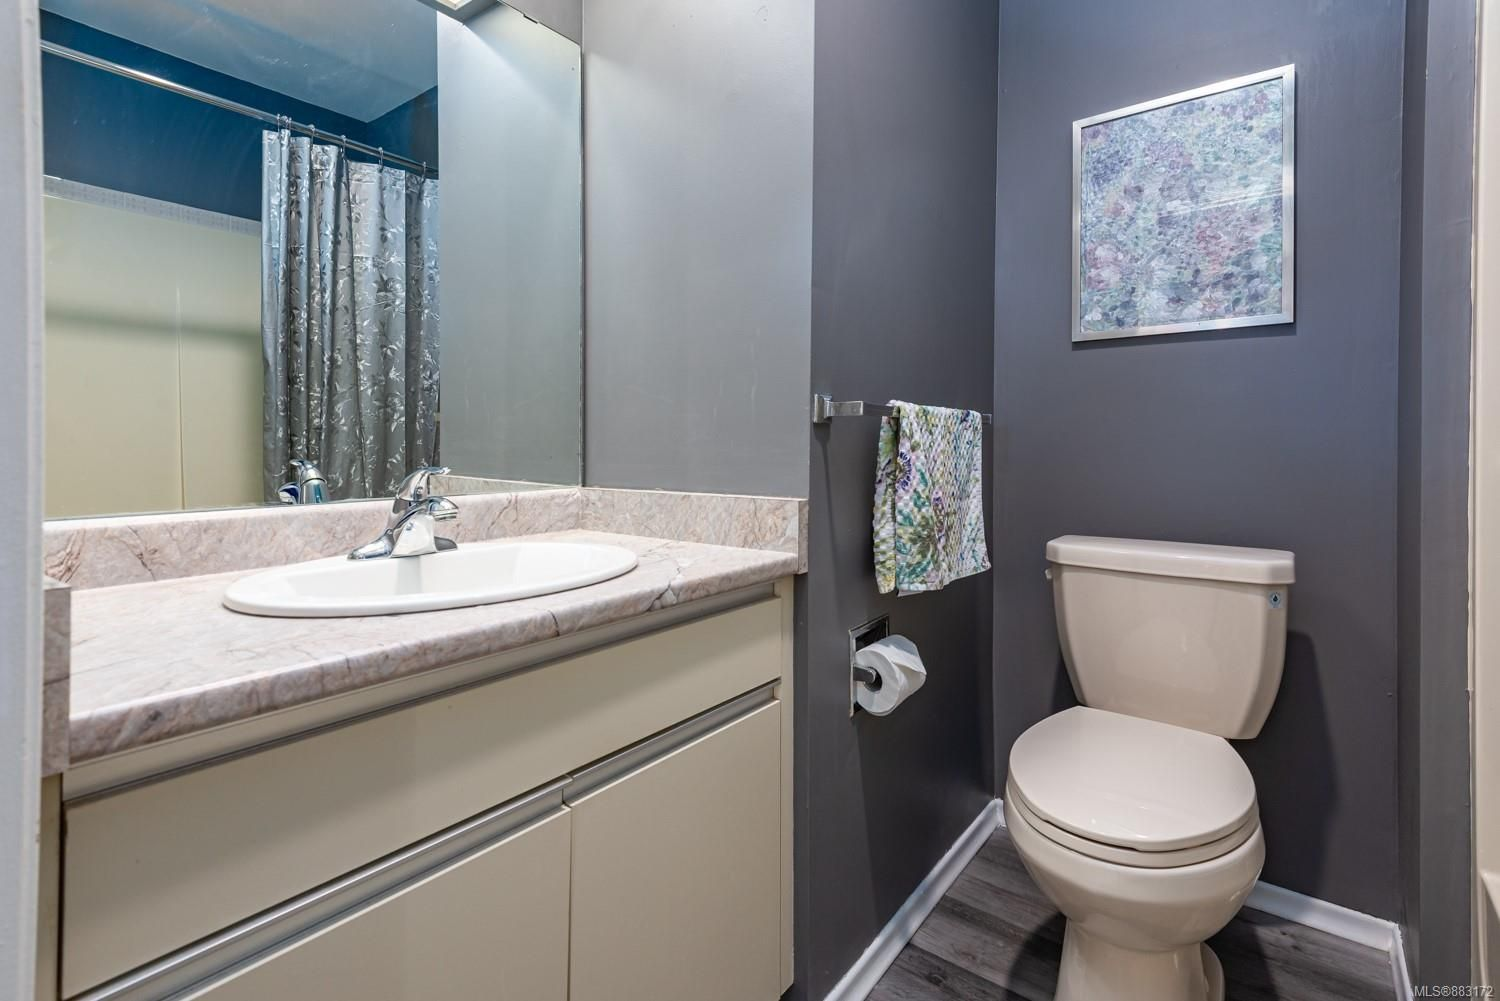 Photo 18: Photos: 303 205 1st St in : CV Courtenay City Row/Townhouse for sale (Comox Valley)  : MLS®# 883172